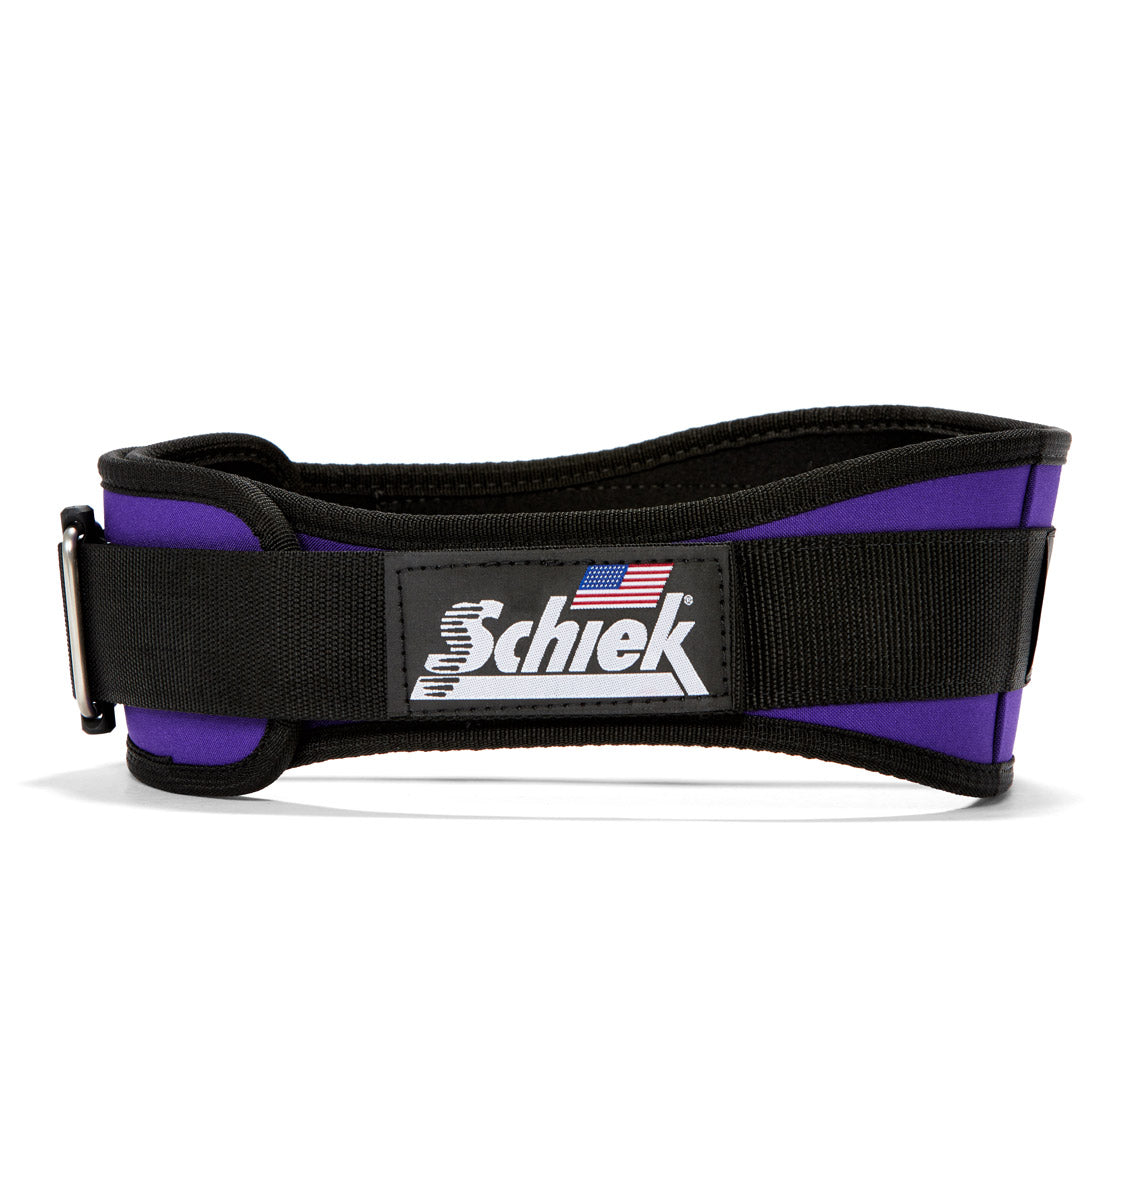 2004 Schiek Contour Weight Lifting Belt Purple Side